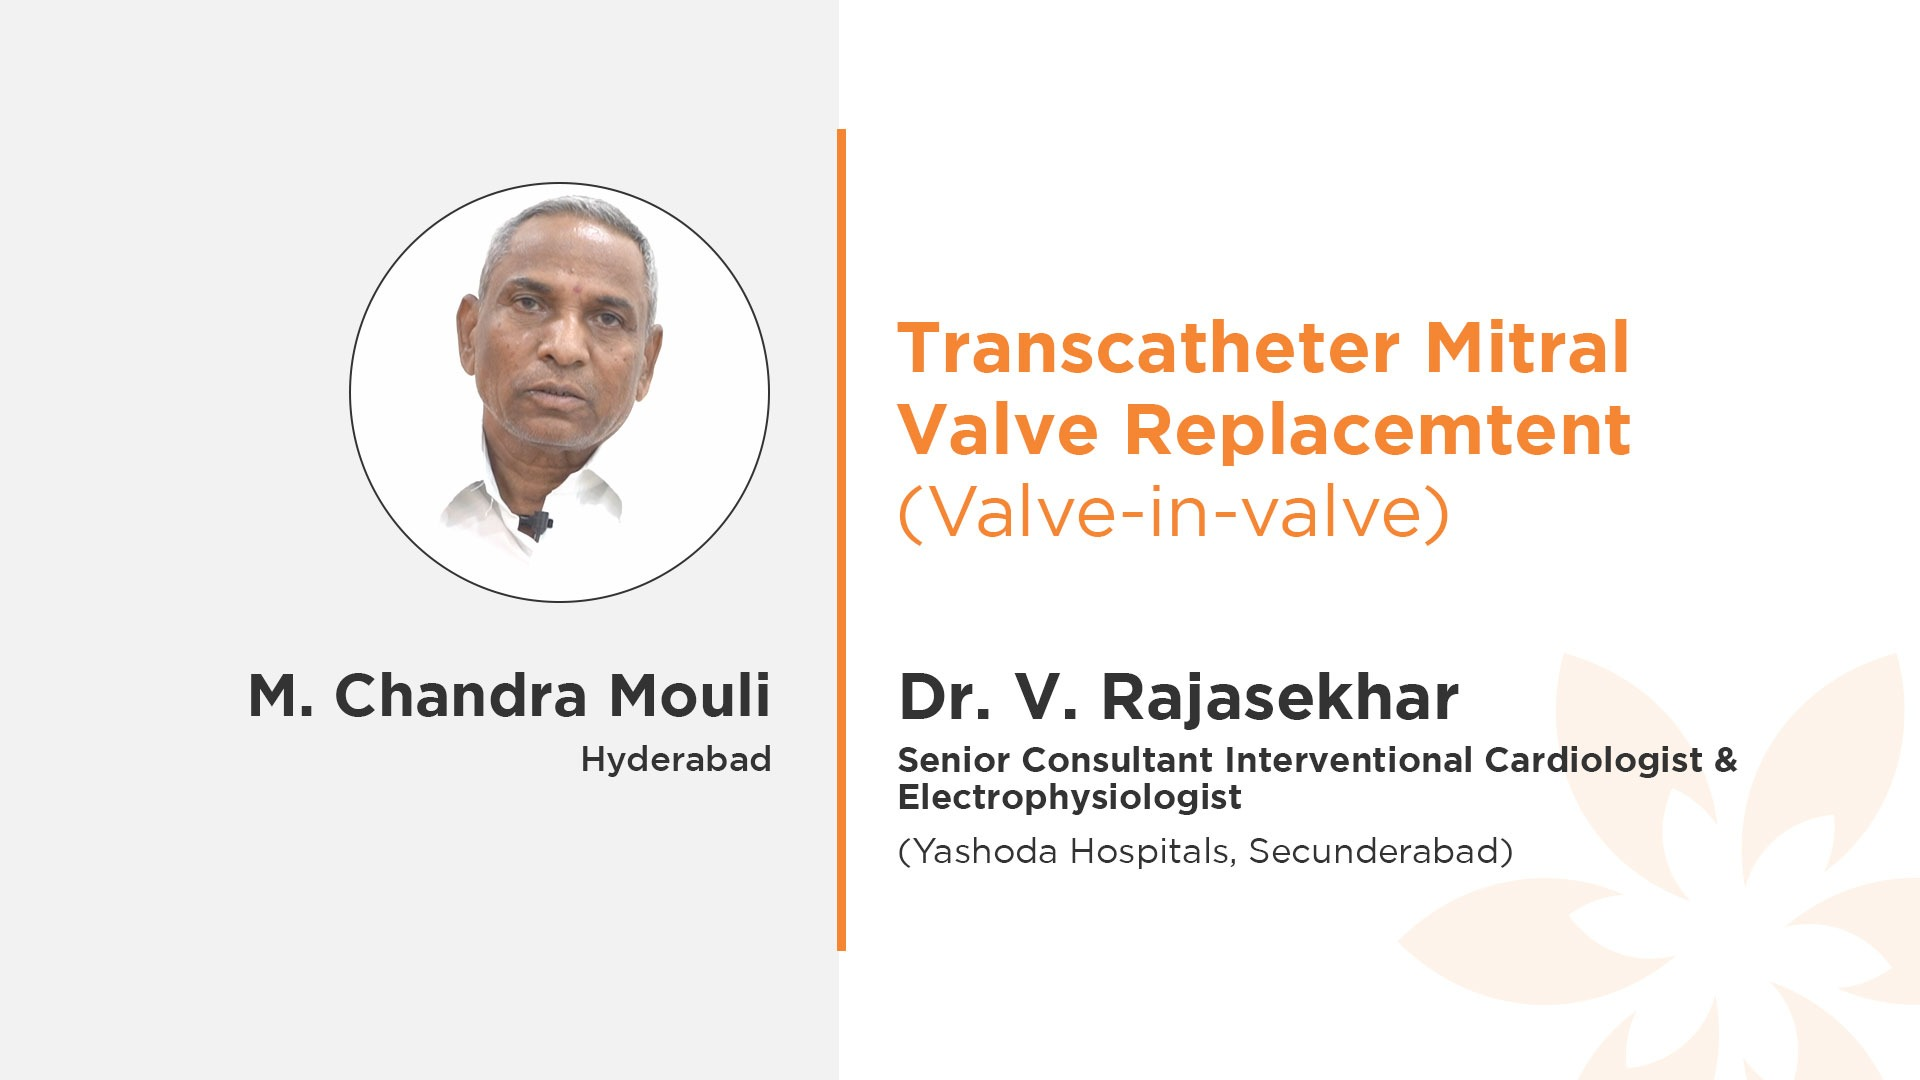 M. Chandra Mouli Dr. V. Rajasekhar Transcatheter Mitral Valve Replacement